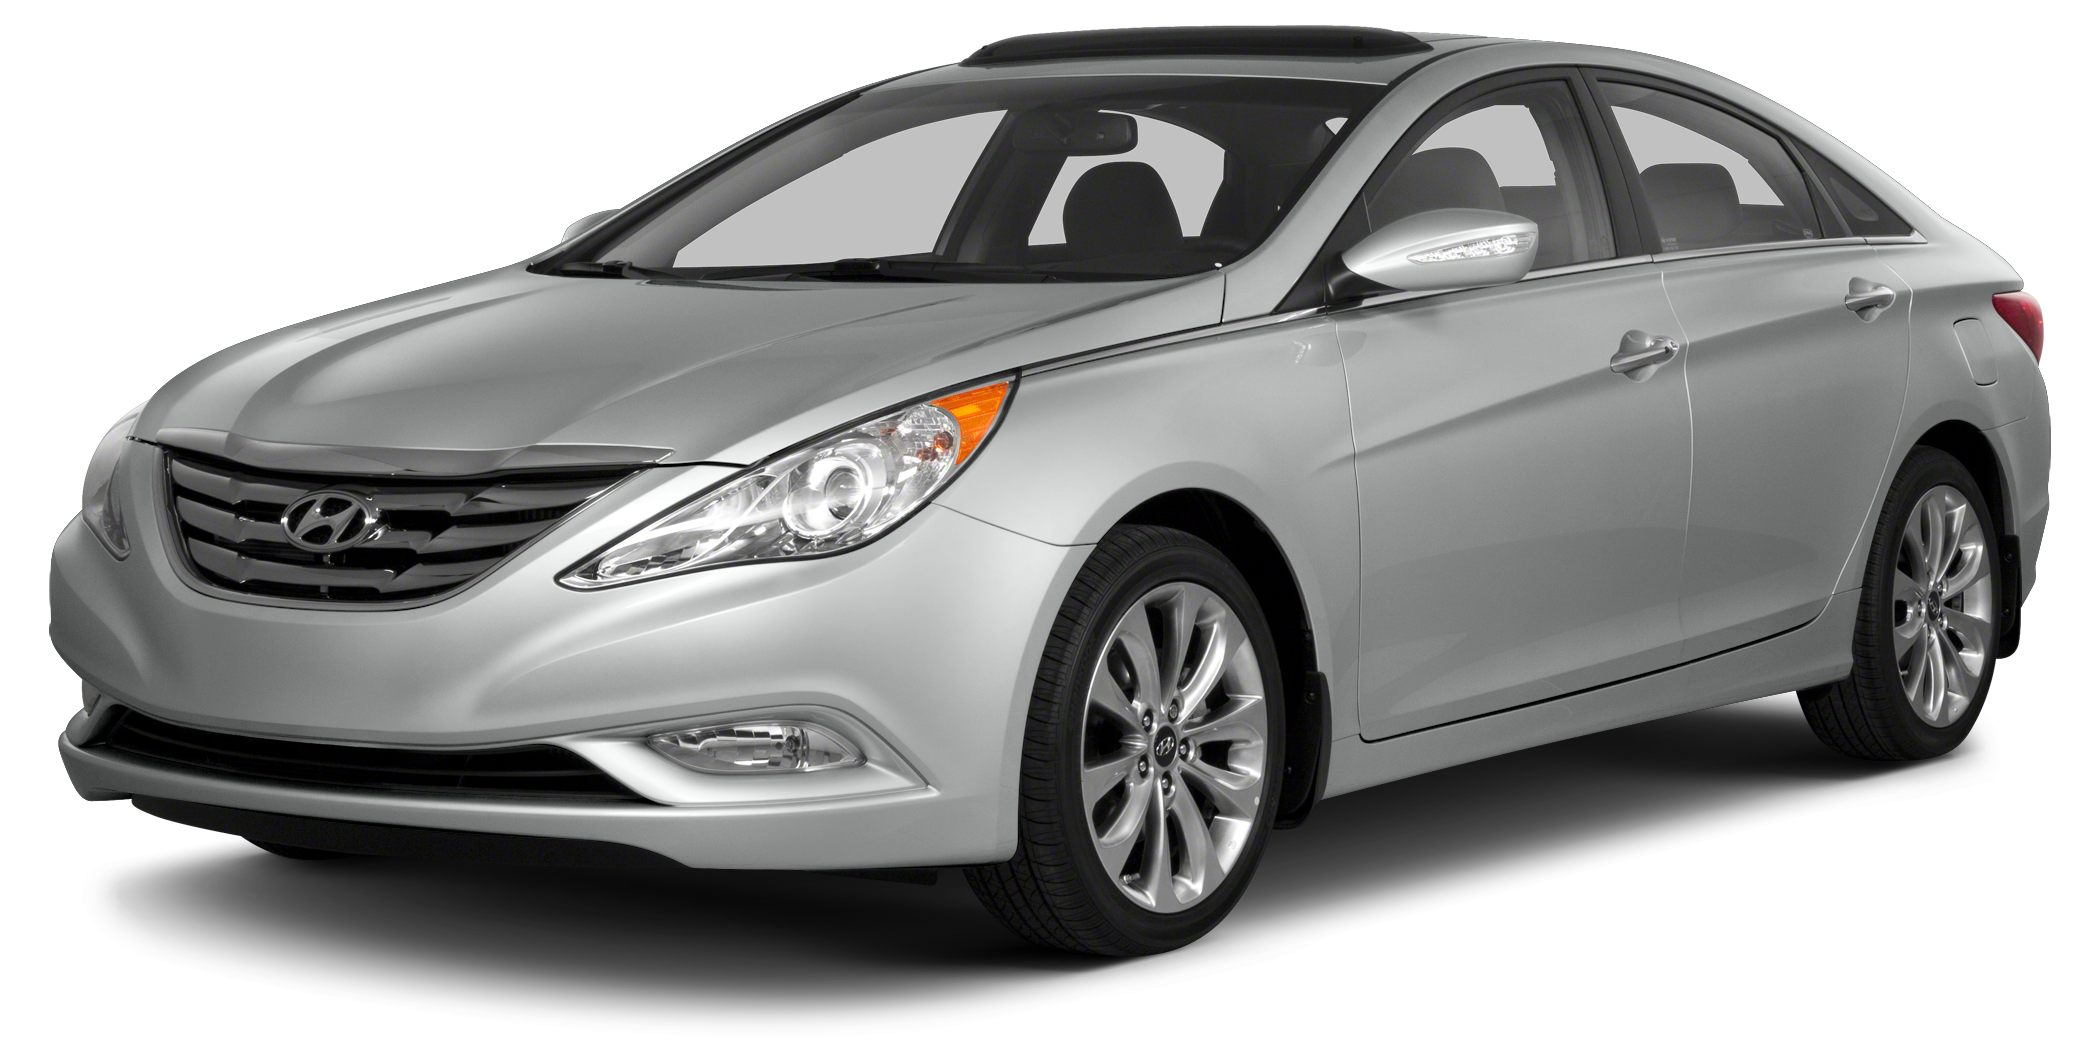 2013 Hyundai Sonata GLS Digital odometer and traction control are just a few of the amazing featur